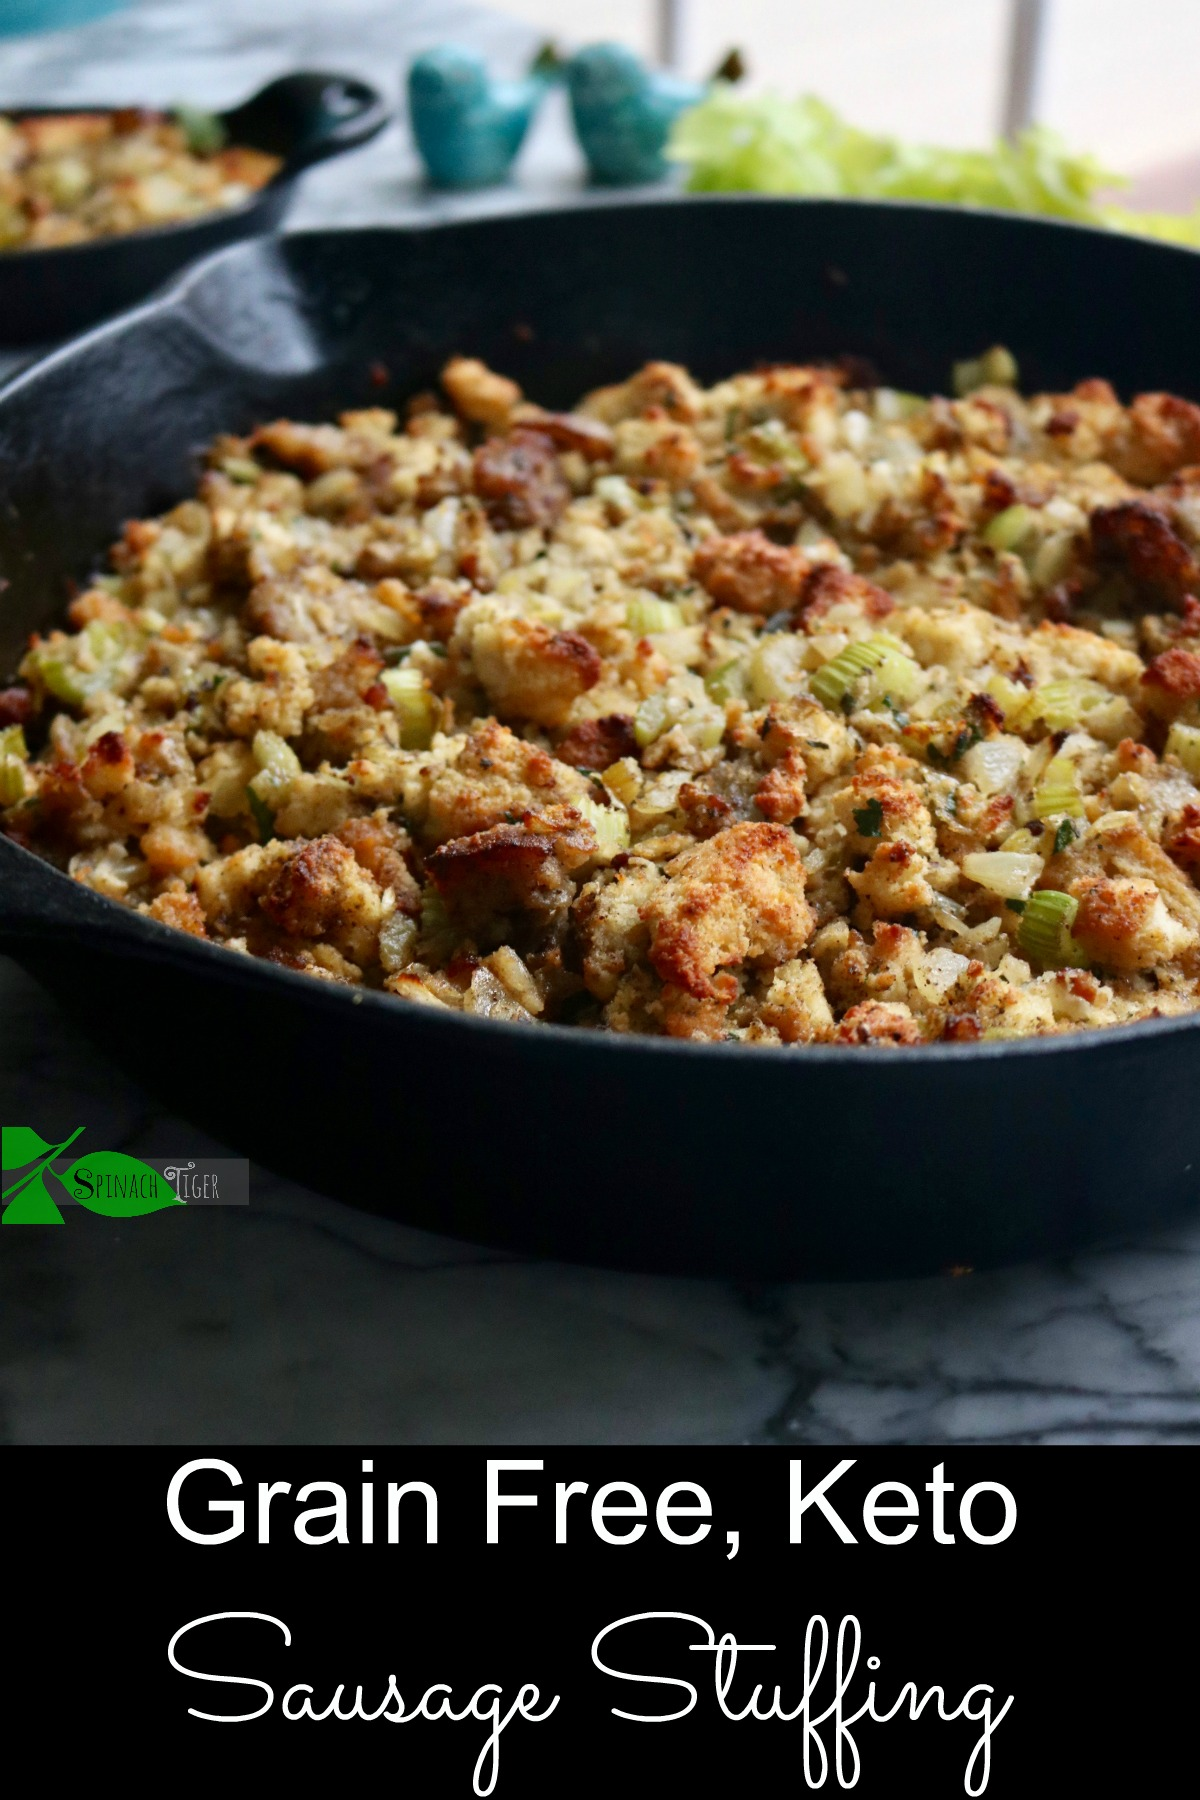 Grain Free Stuffing, Low Carb, Keto, Diabetic Friendly from spinach Tiger